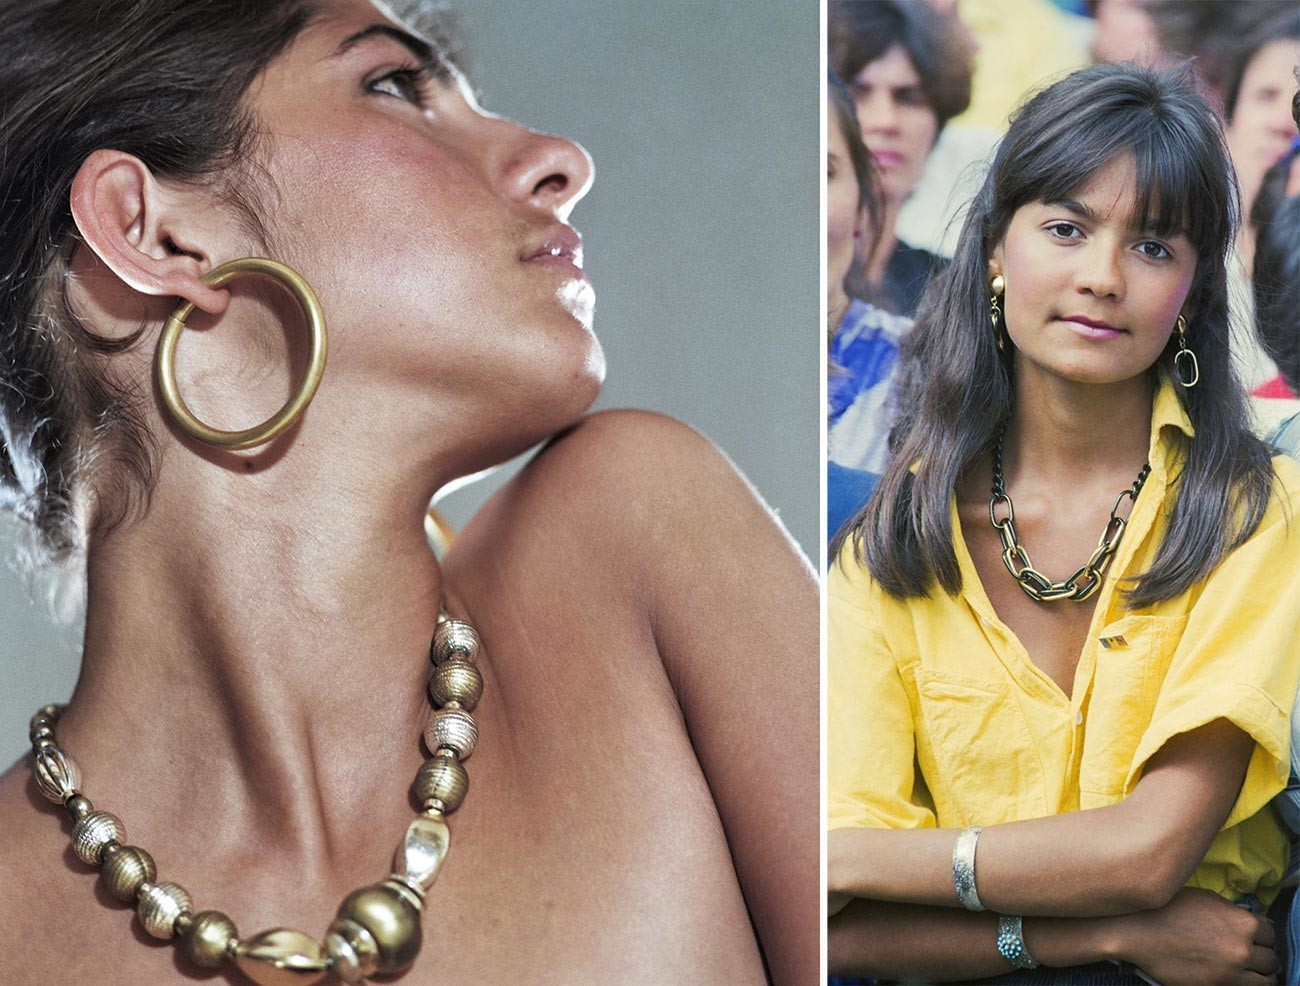 Left: Plastic jewelry made in Georgia. Right: A lady attends a public event in Kizhinev, Moldova.